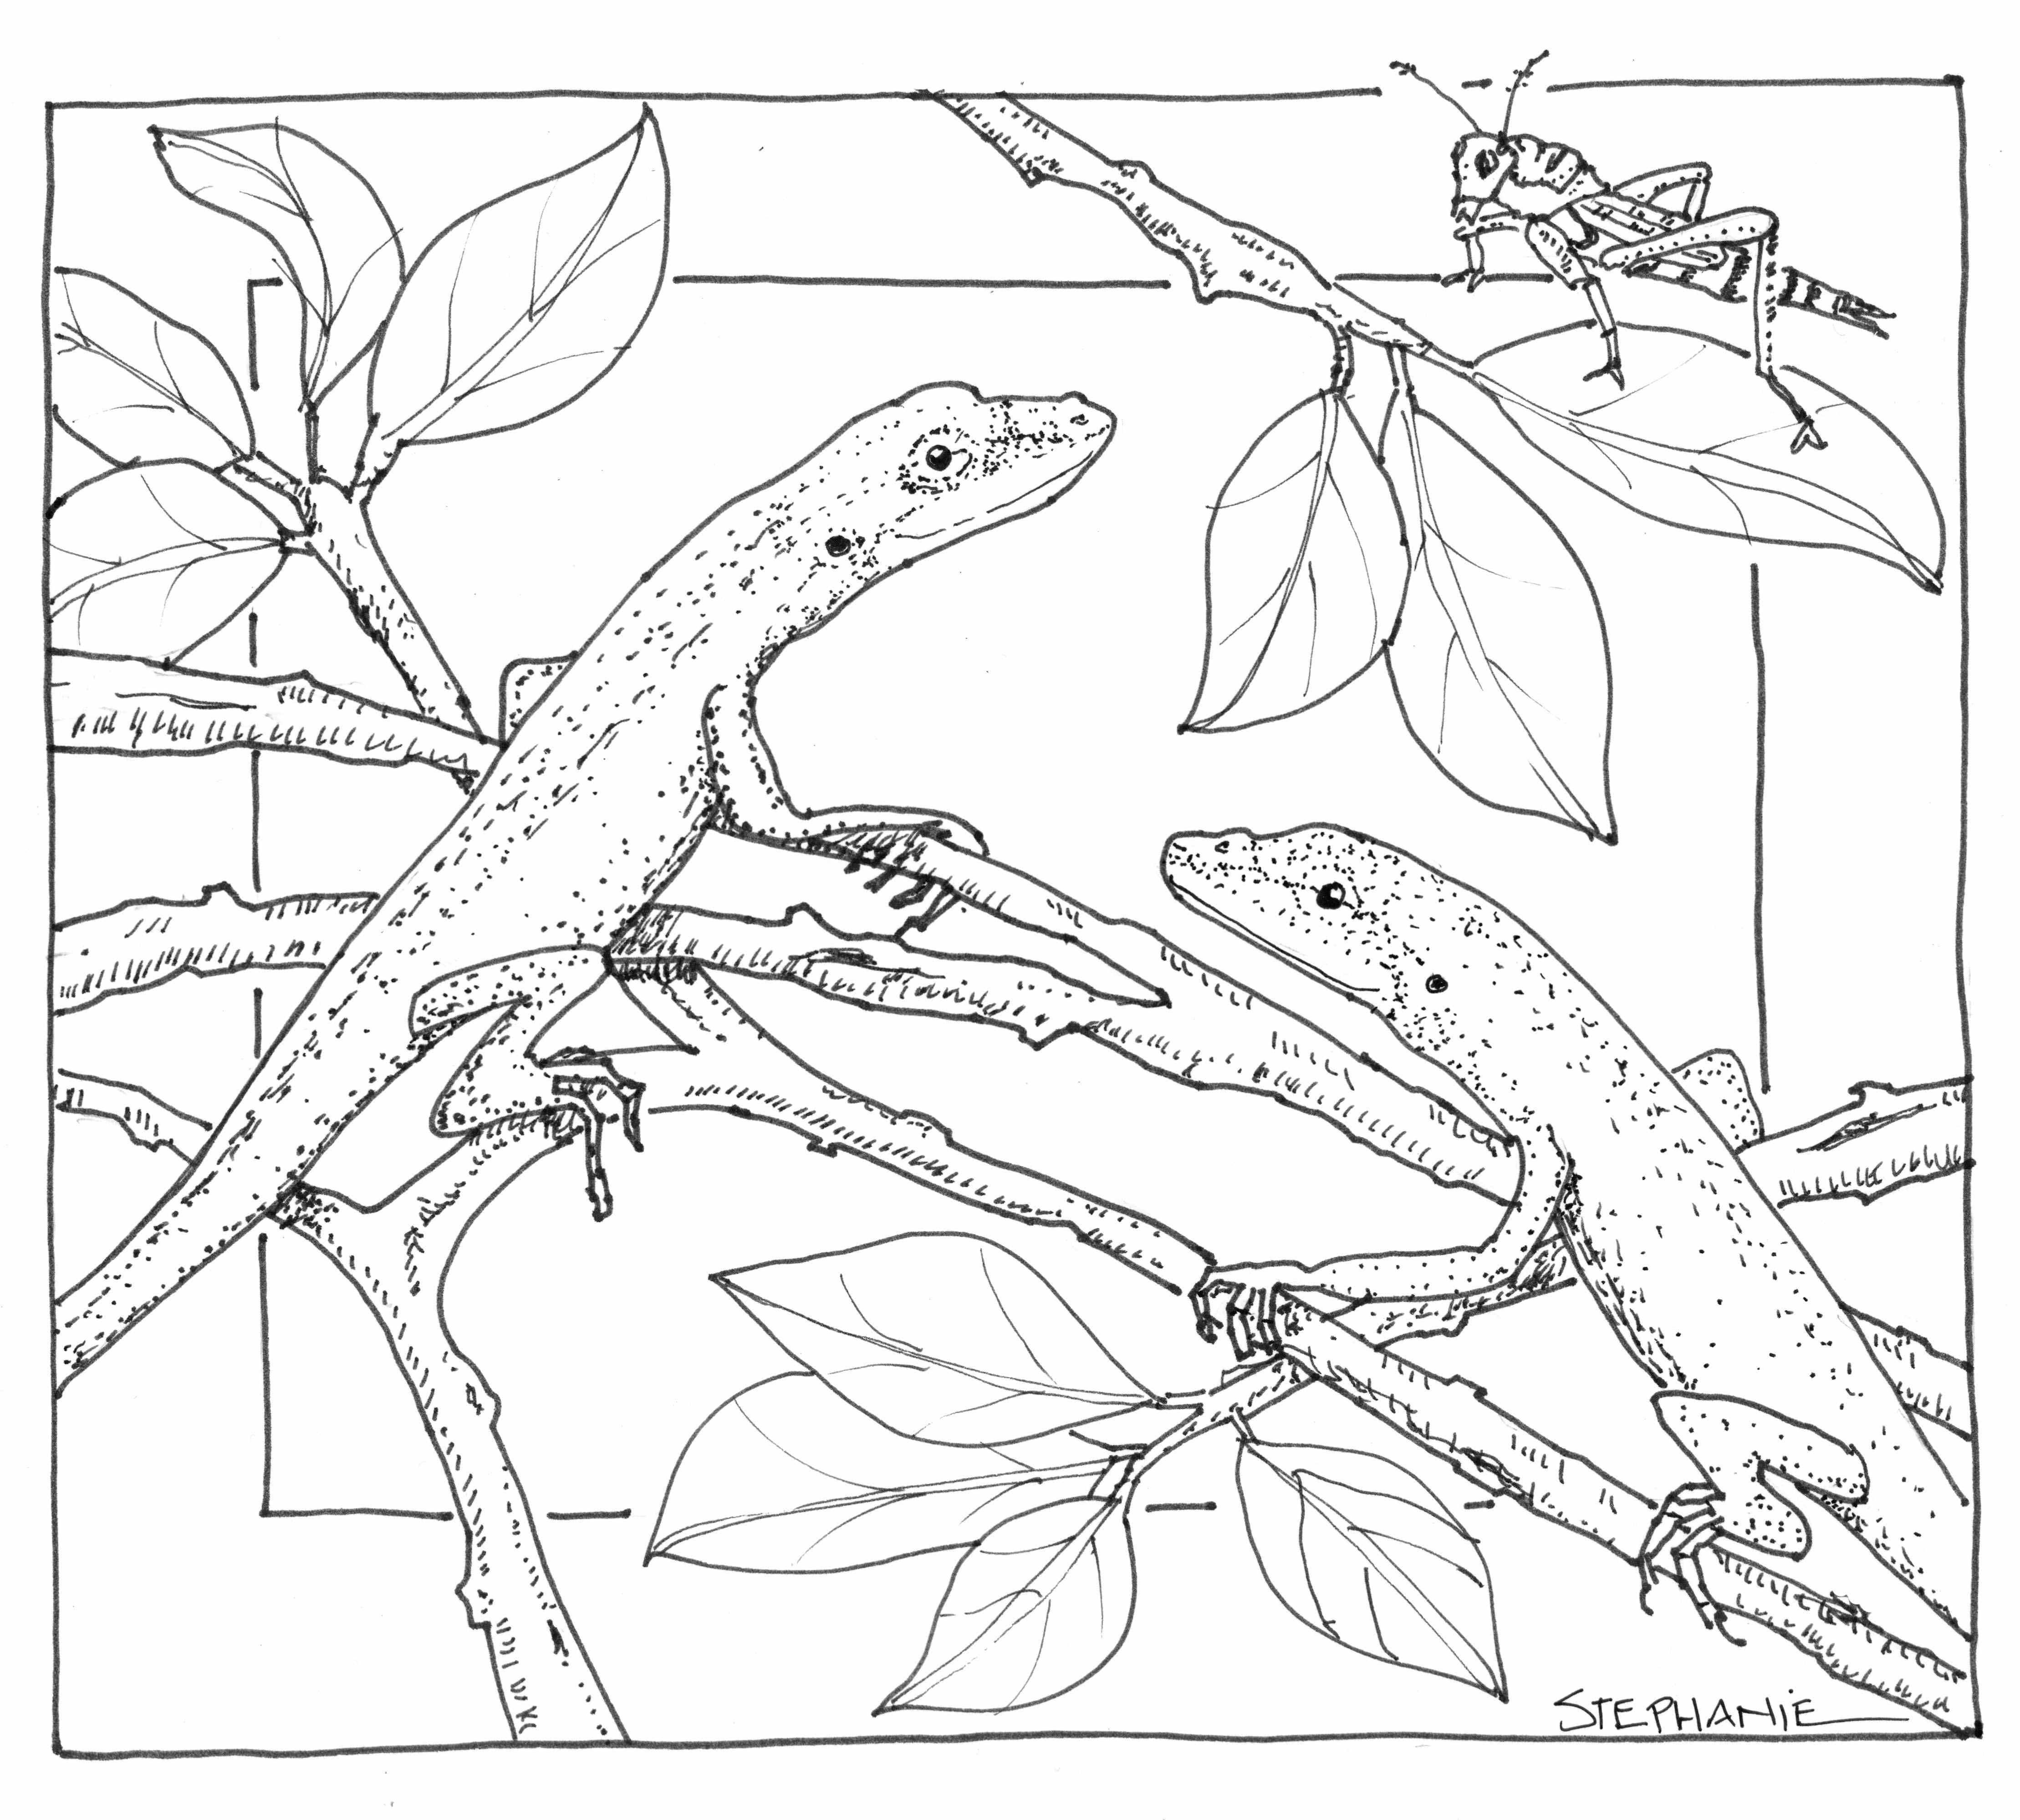 coloring worksheets about nature get this nature coloring pages free for kids e9bnu nature worksheets about coloring